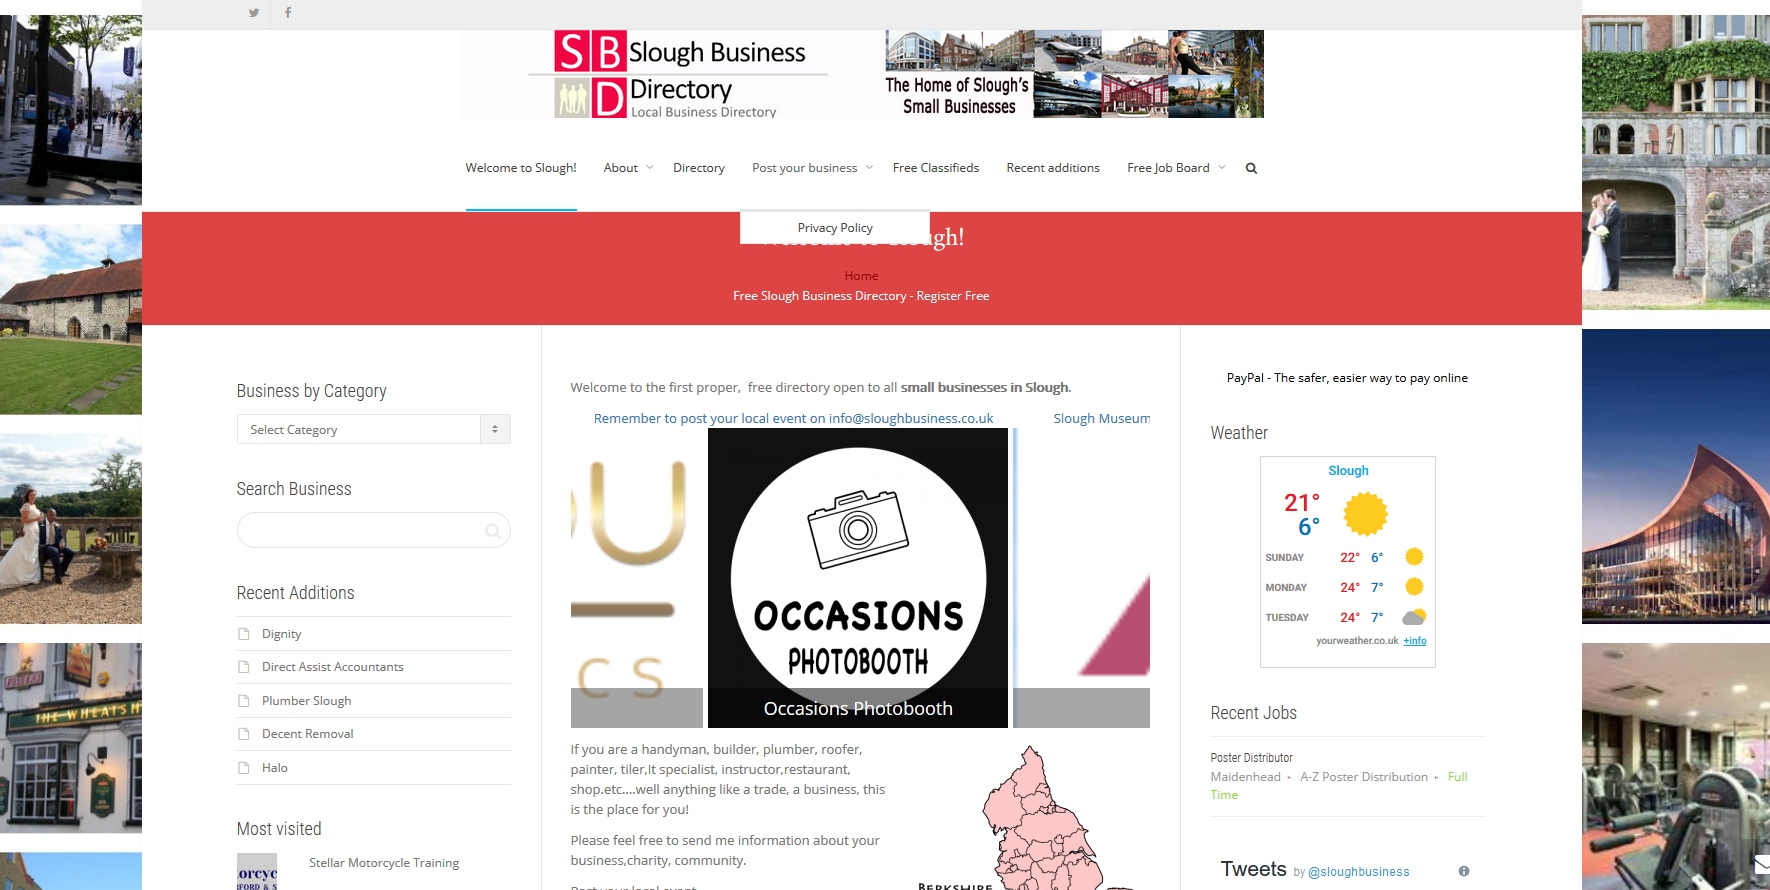 Sloughbusiness.co.uk